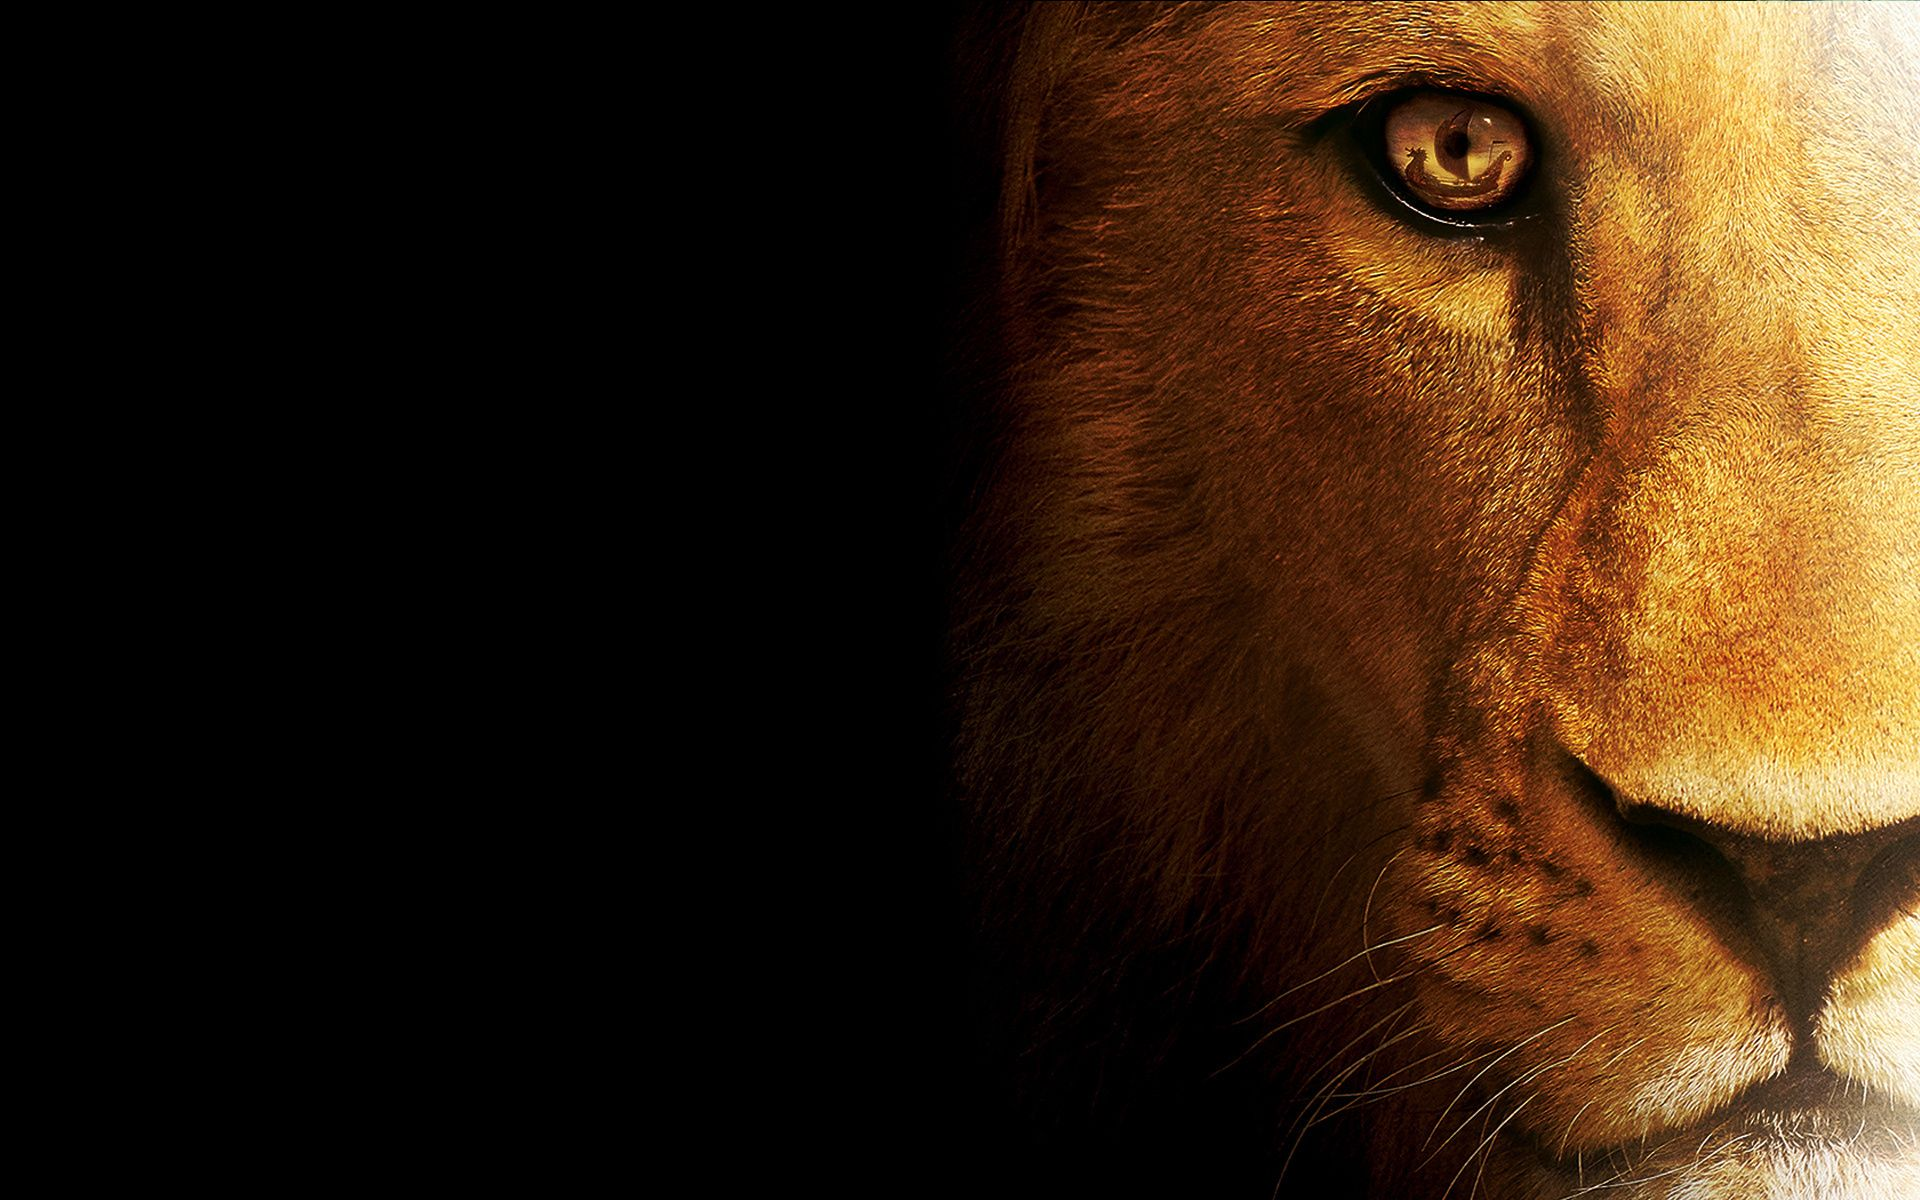 Hd wallpaper lion - Site Highdefinitionwallpapers1080p Com Download Lion Wallpaper In High Resolution For Free